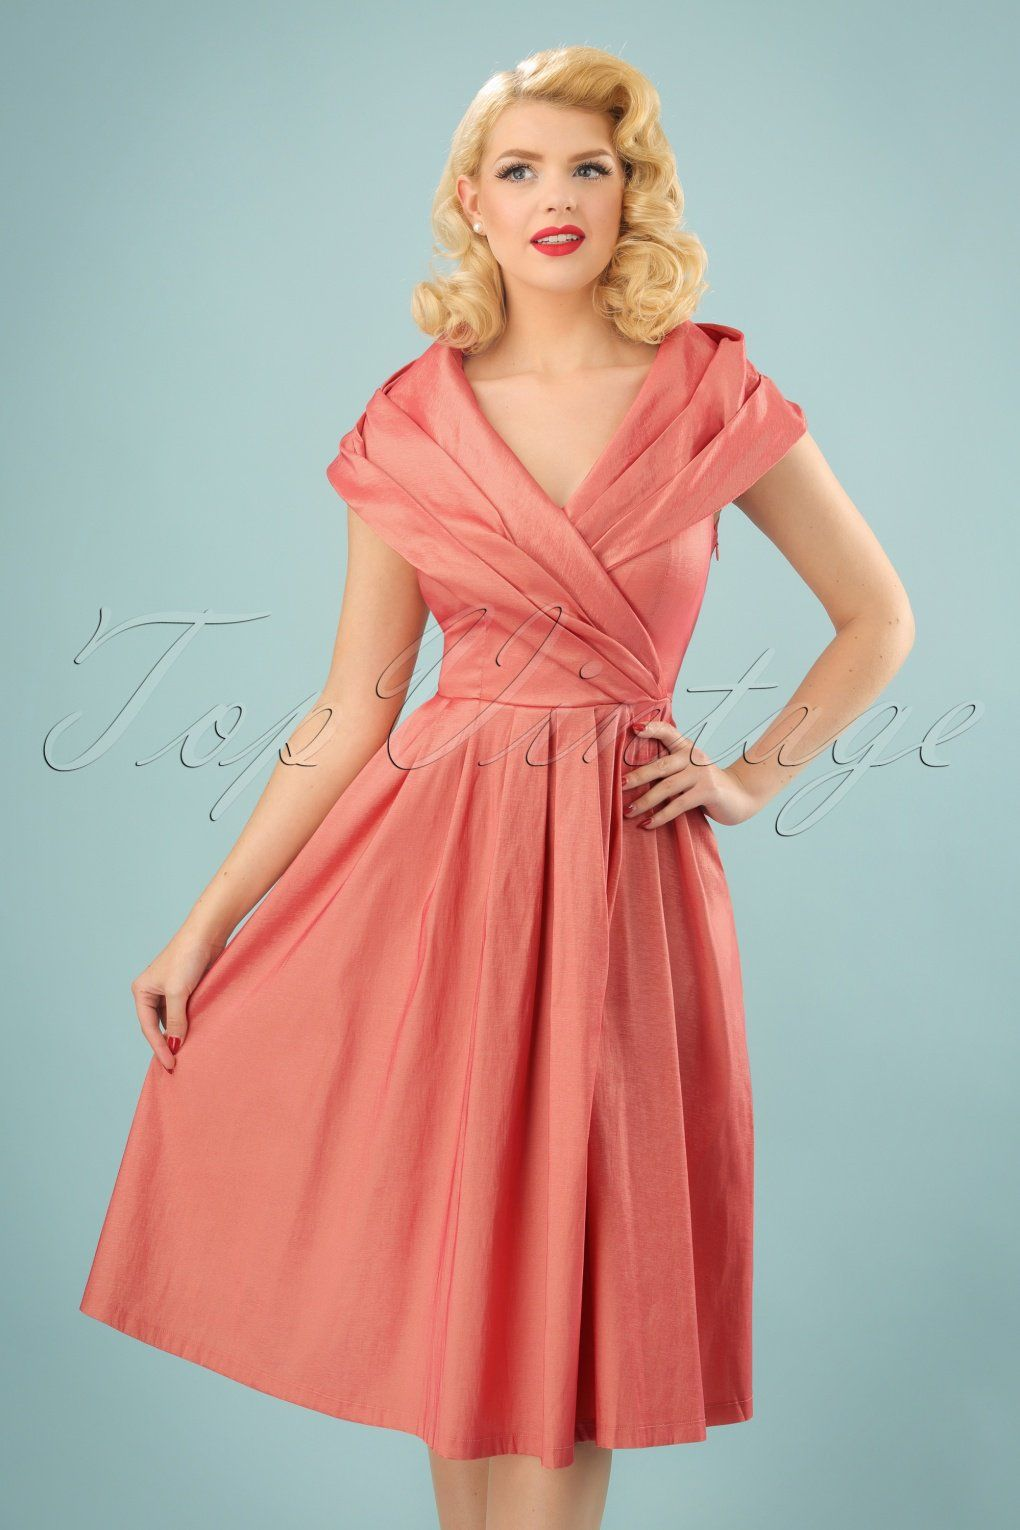 This 50s Amber Swing Dress In Pearl Pink Will Become The Pearl Of Your Dress Collection Wow Make A Gran Pink Swing Dress Evening Dresses Vintage Swing Dress [ 1530 x 1020 Pixel ]